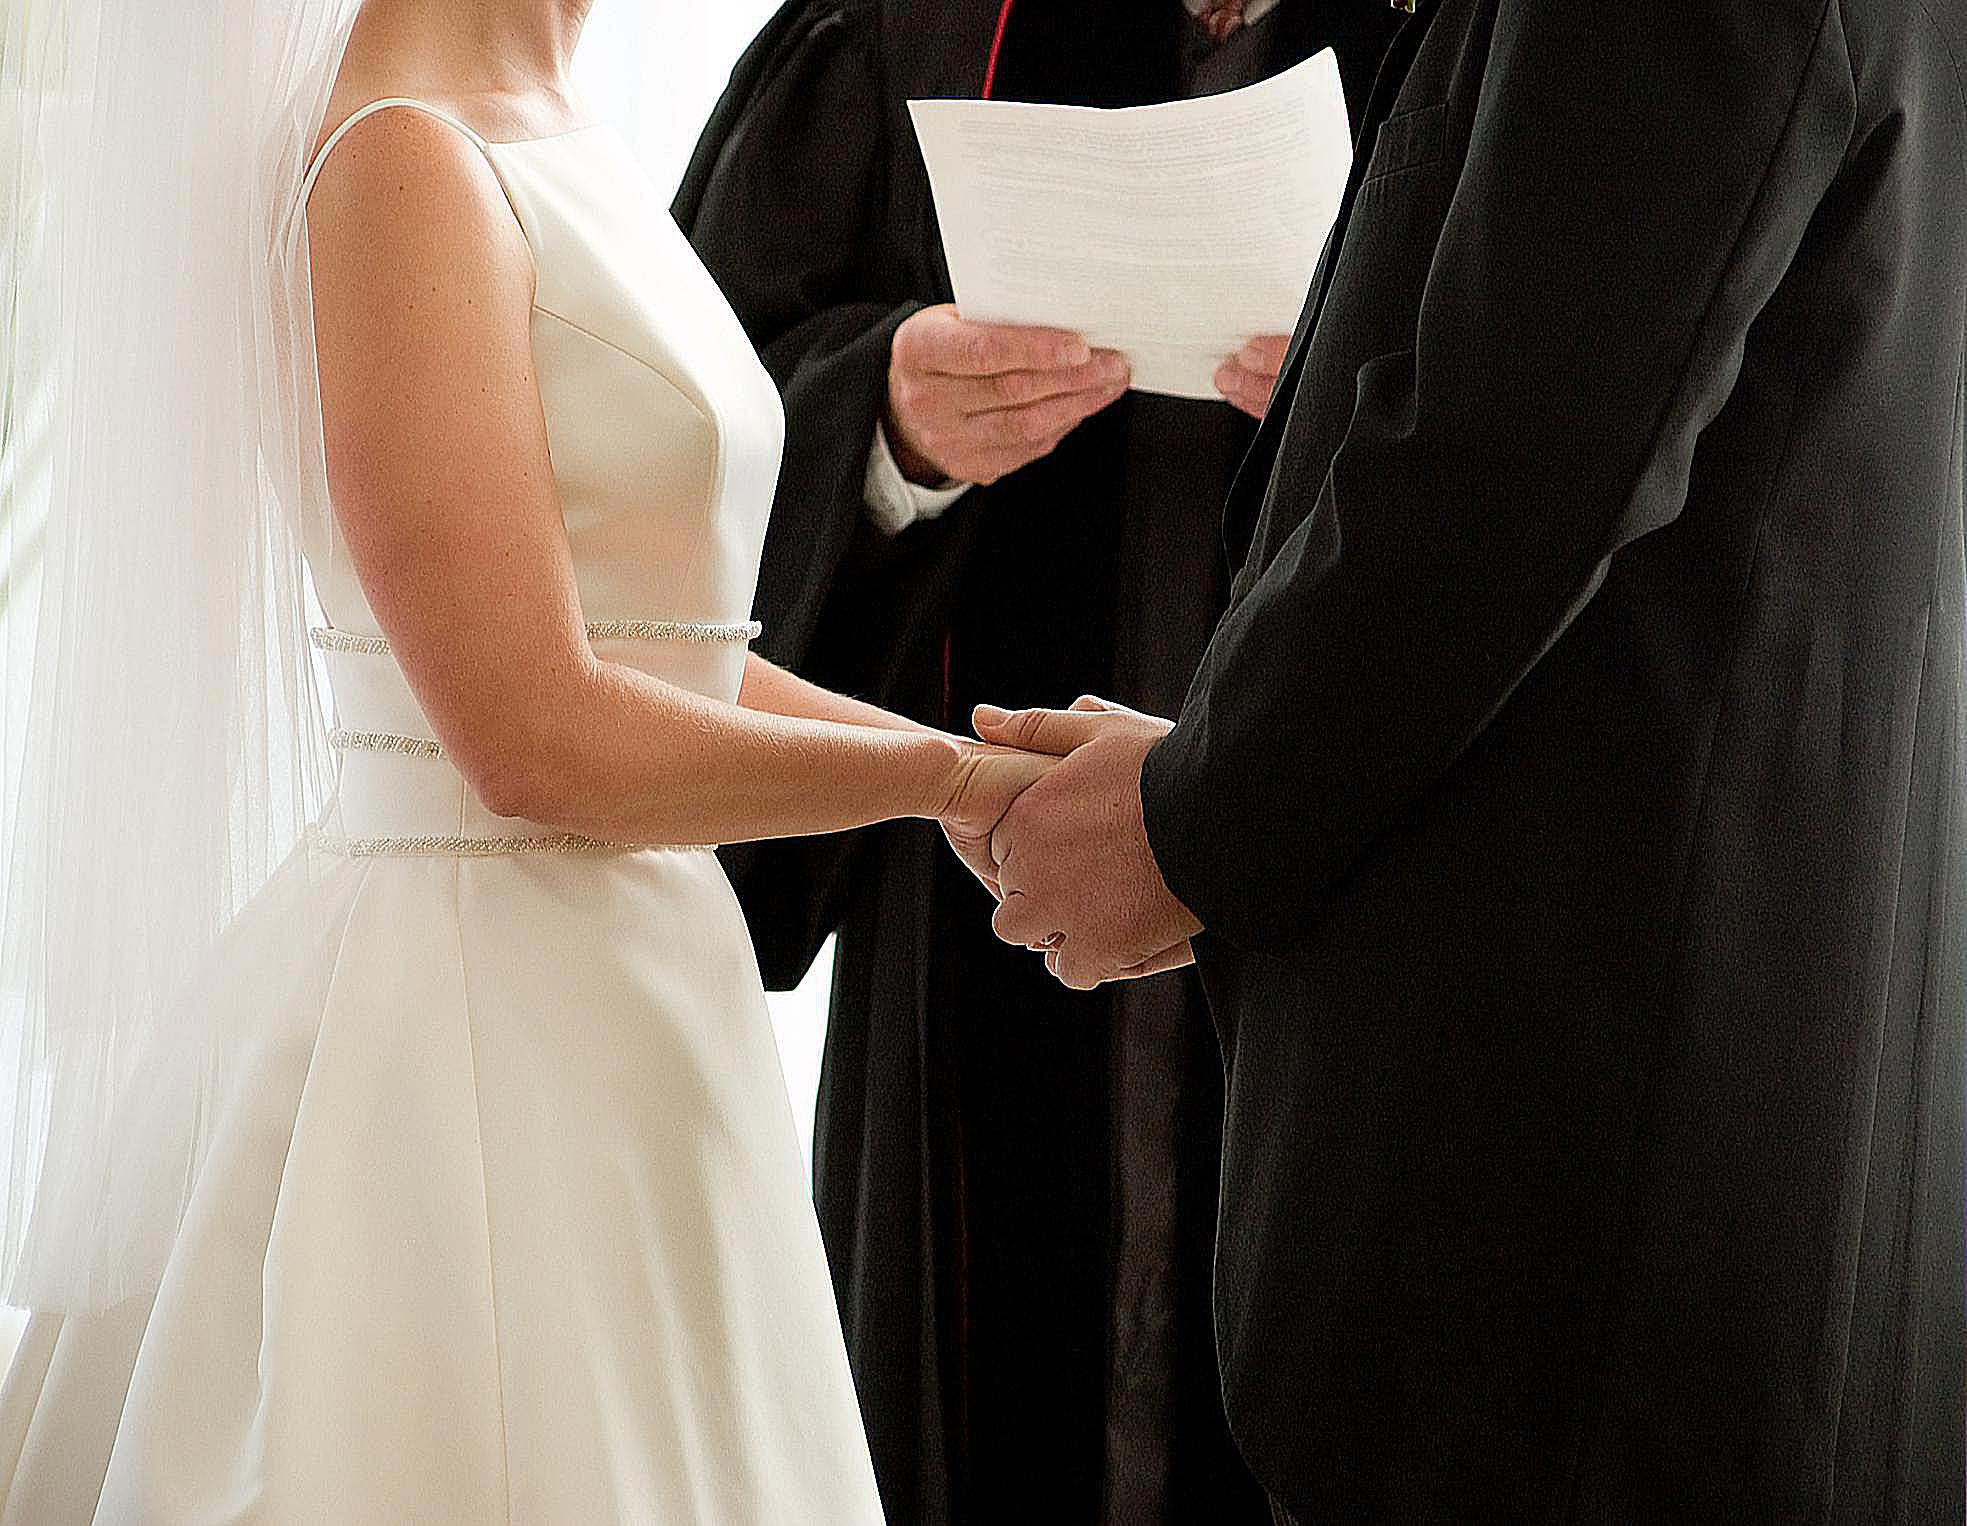 10 Lines That You Can Use To Make Touching And Beautiful Wedding Vows